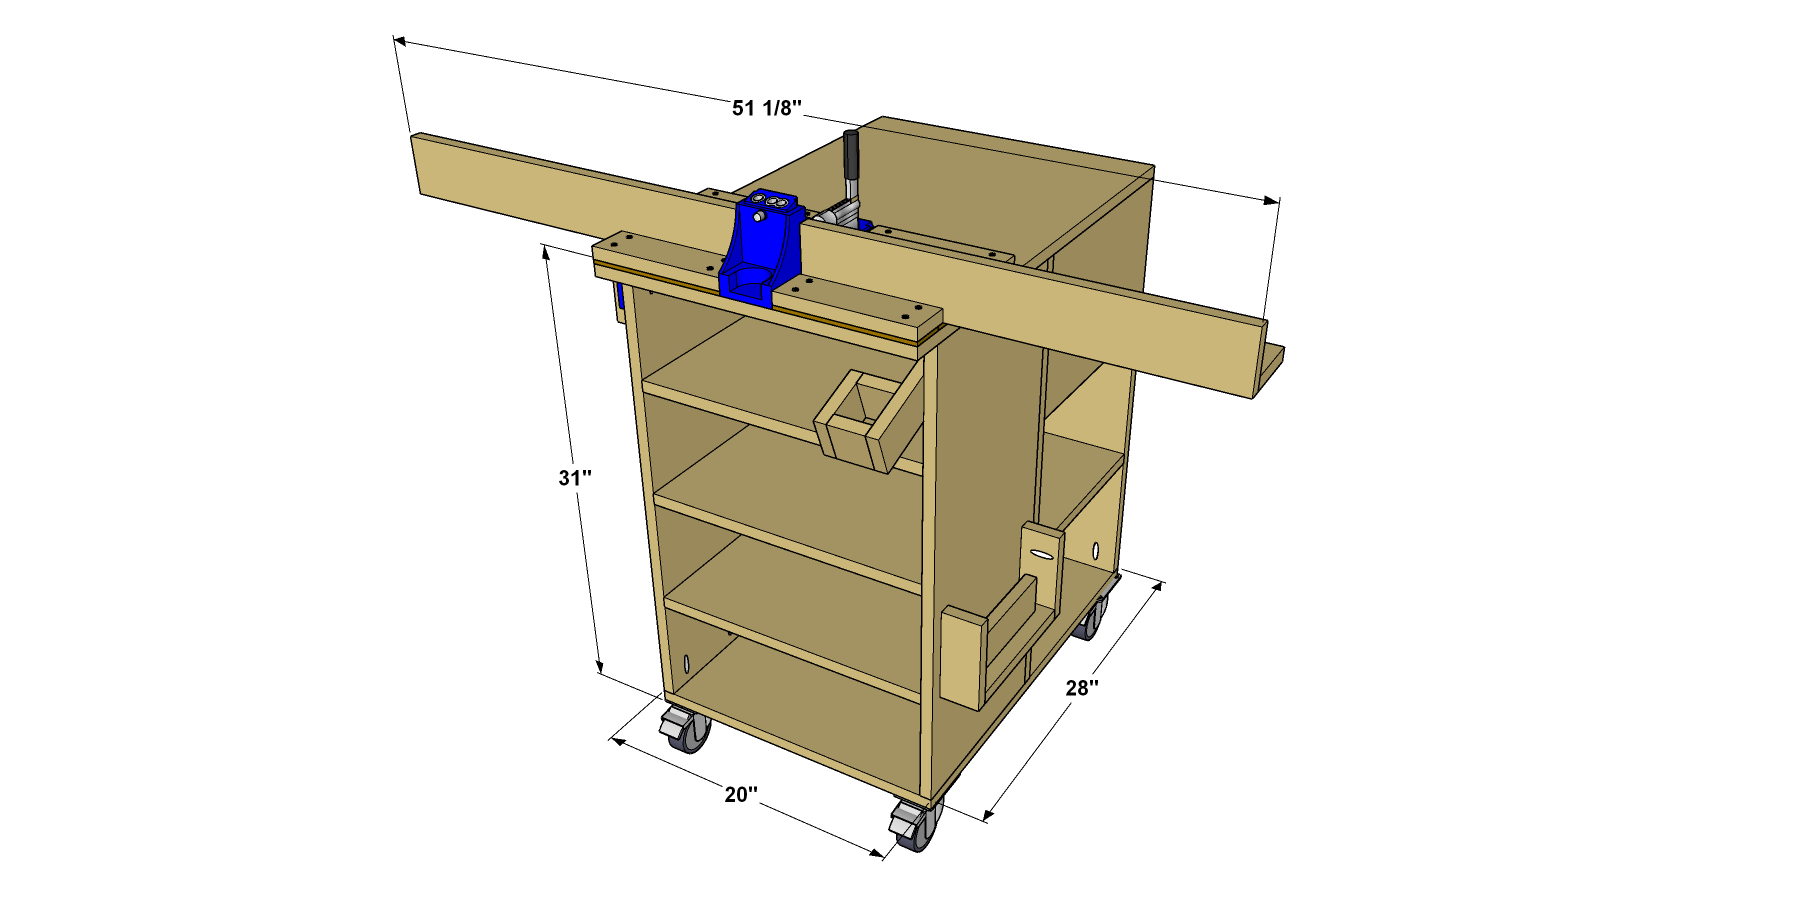 kreg-jig-work-center-overall-with-dimensions